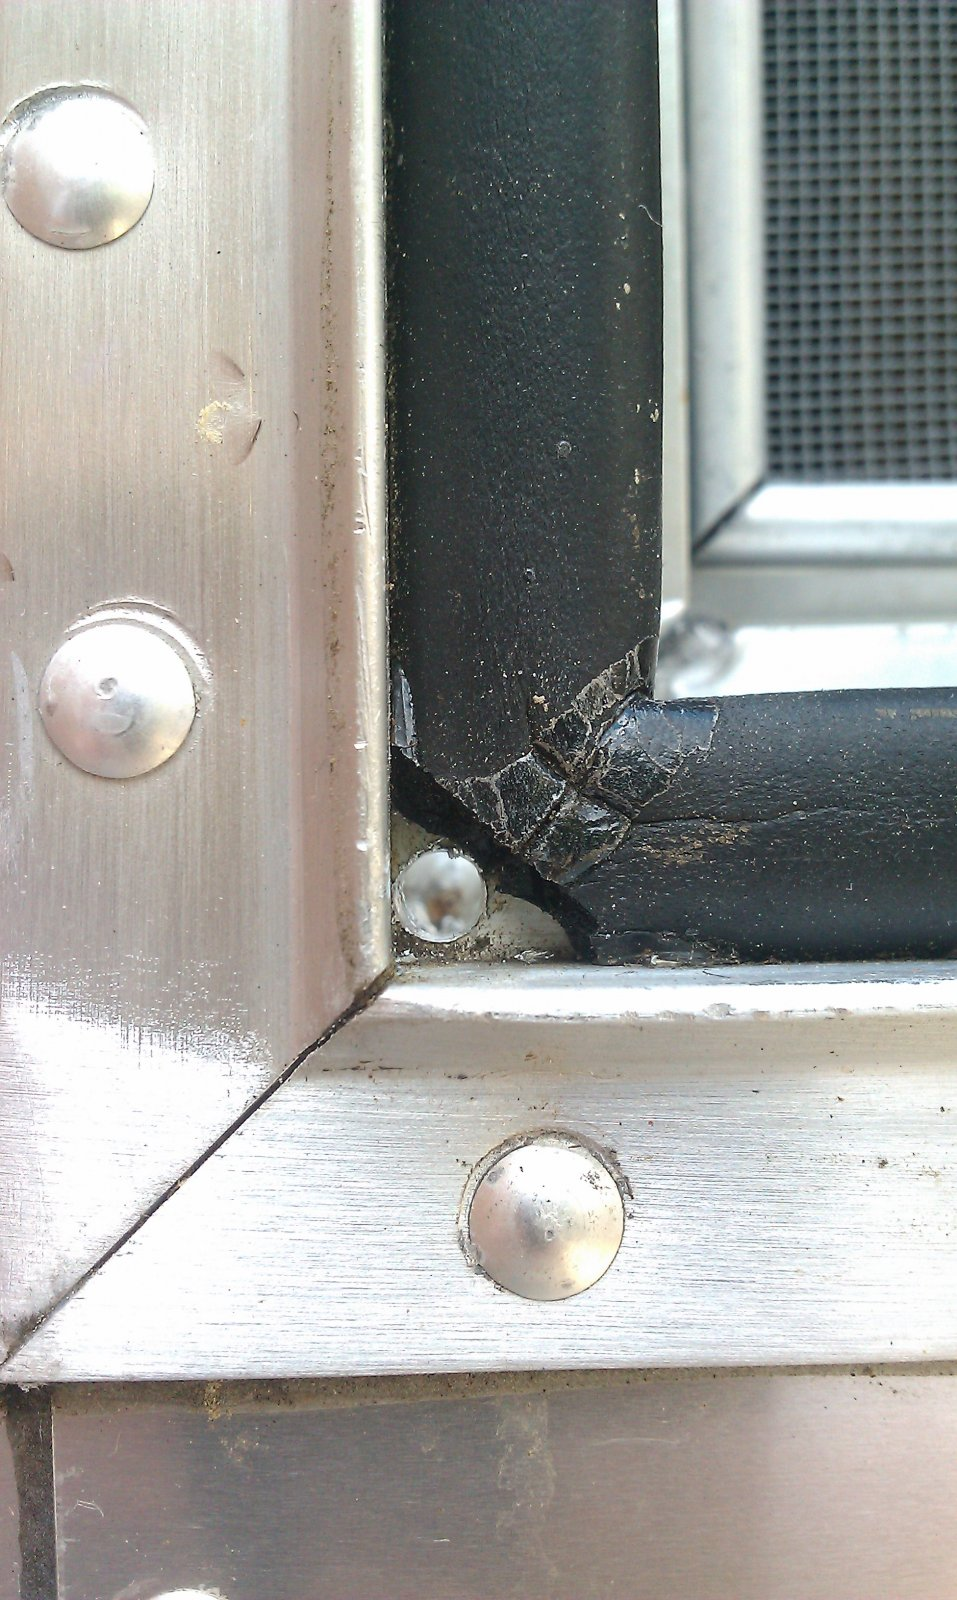 Click image for larger version  Name:rear window drain.jpg Views:145 Size:287.5 KB ID:204405